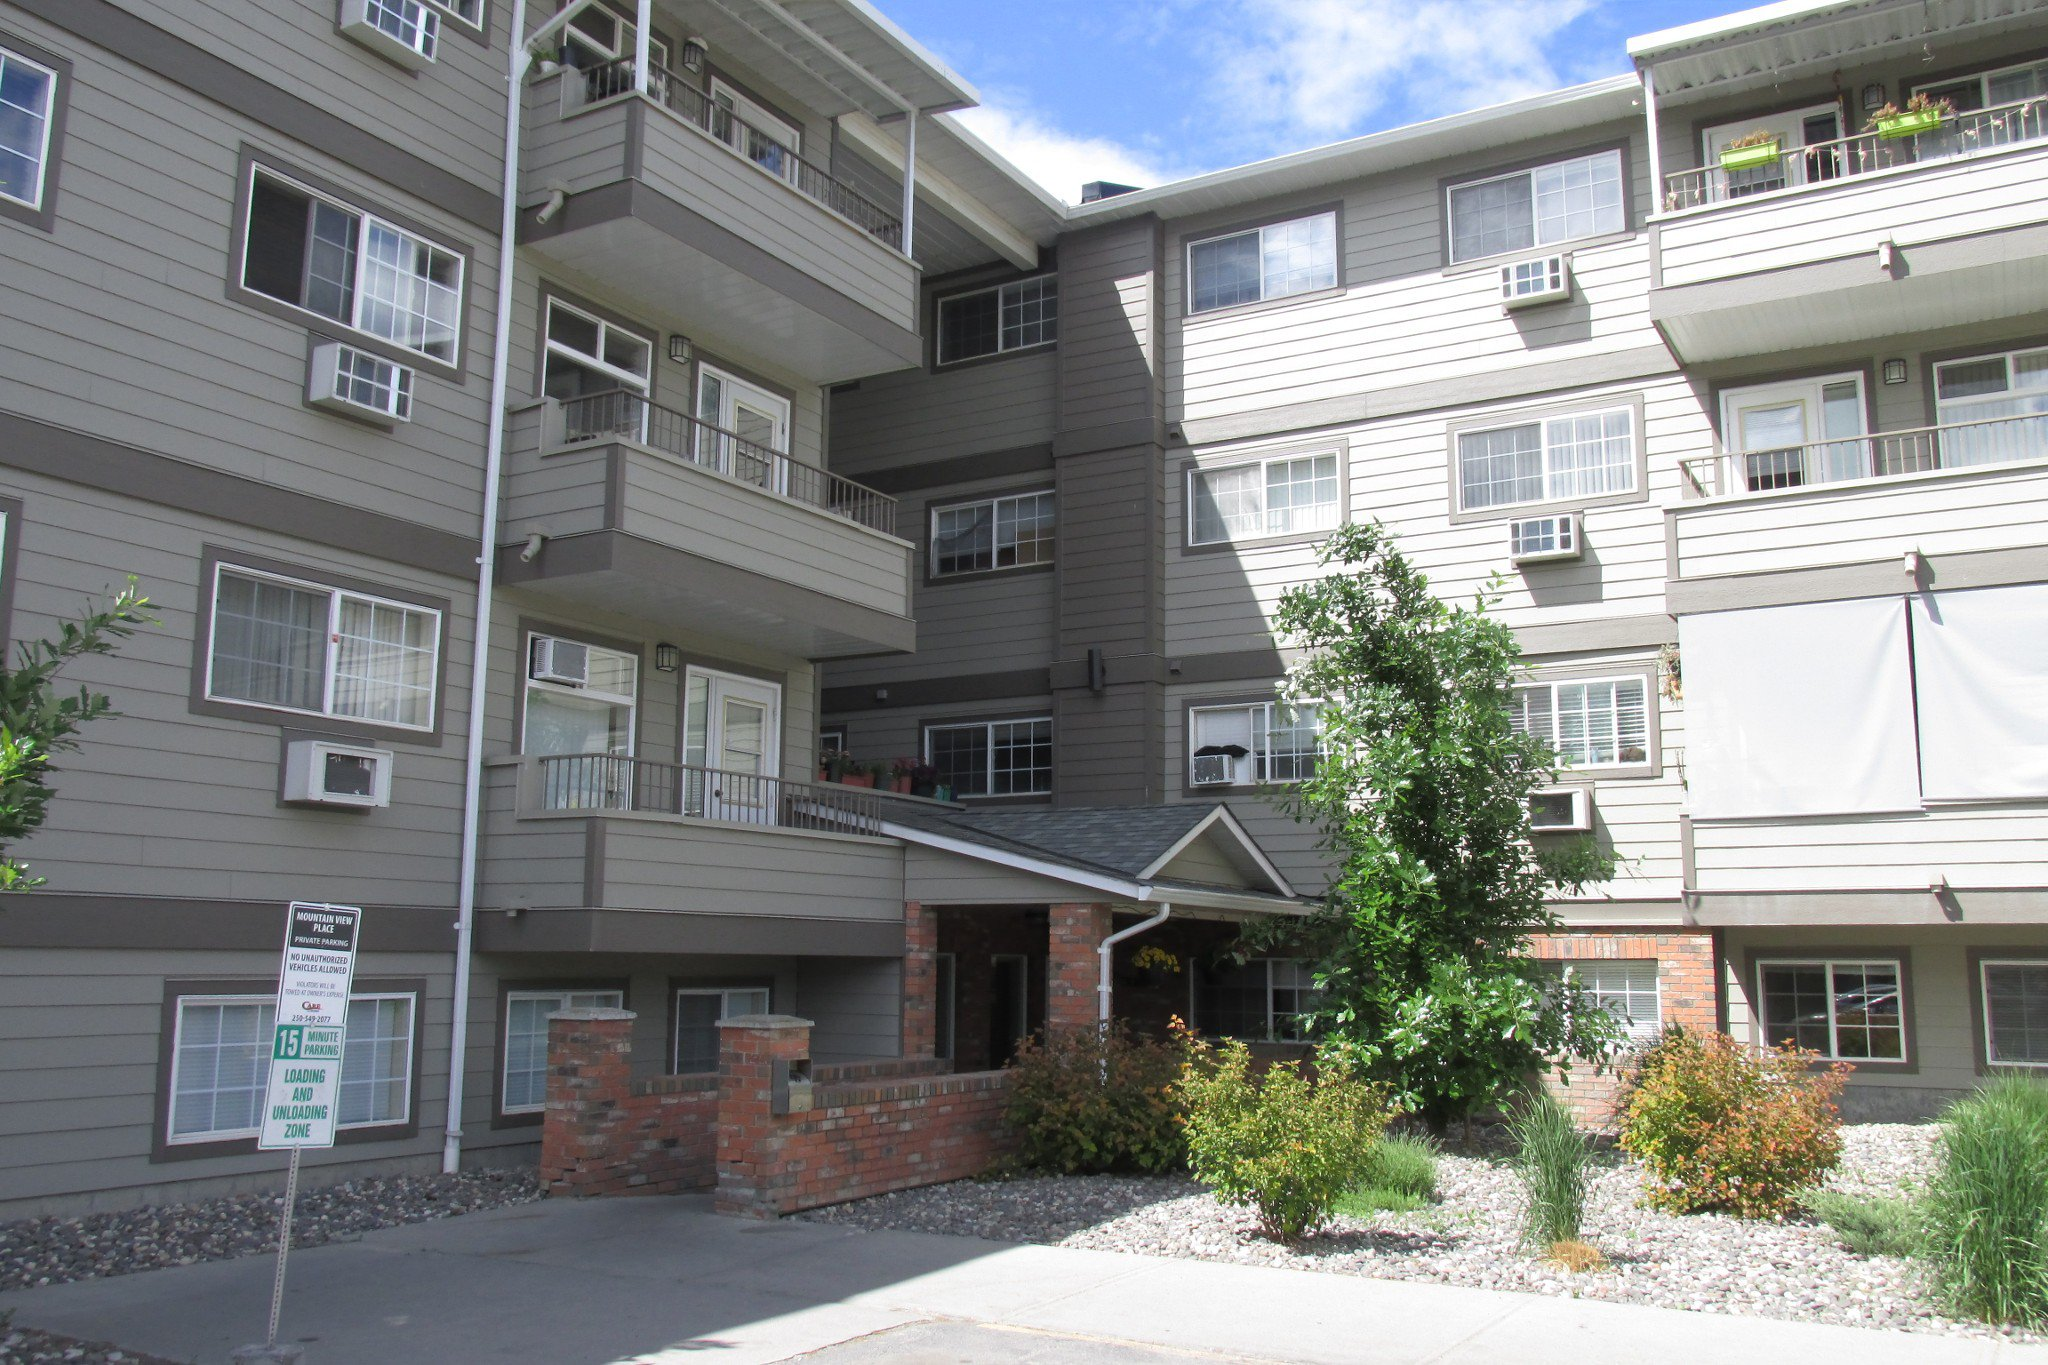 Main Photo: #406 3700 28A St in Vernon: City of Vernon Condo for sale : MLS®# 10184299